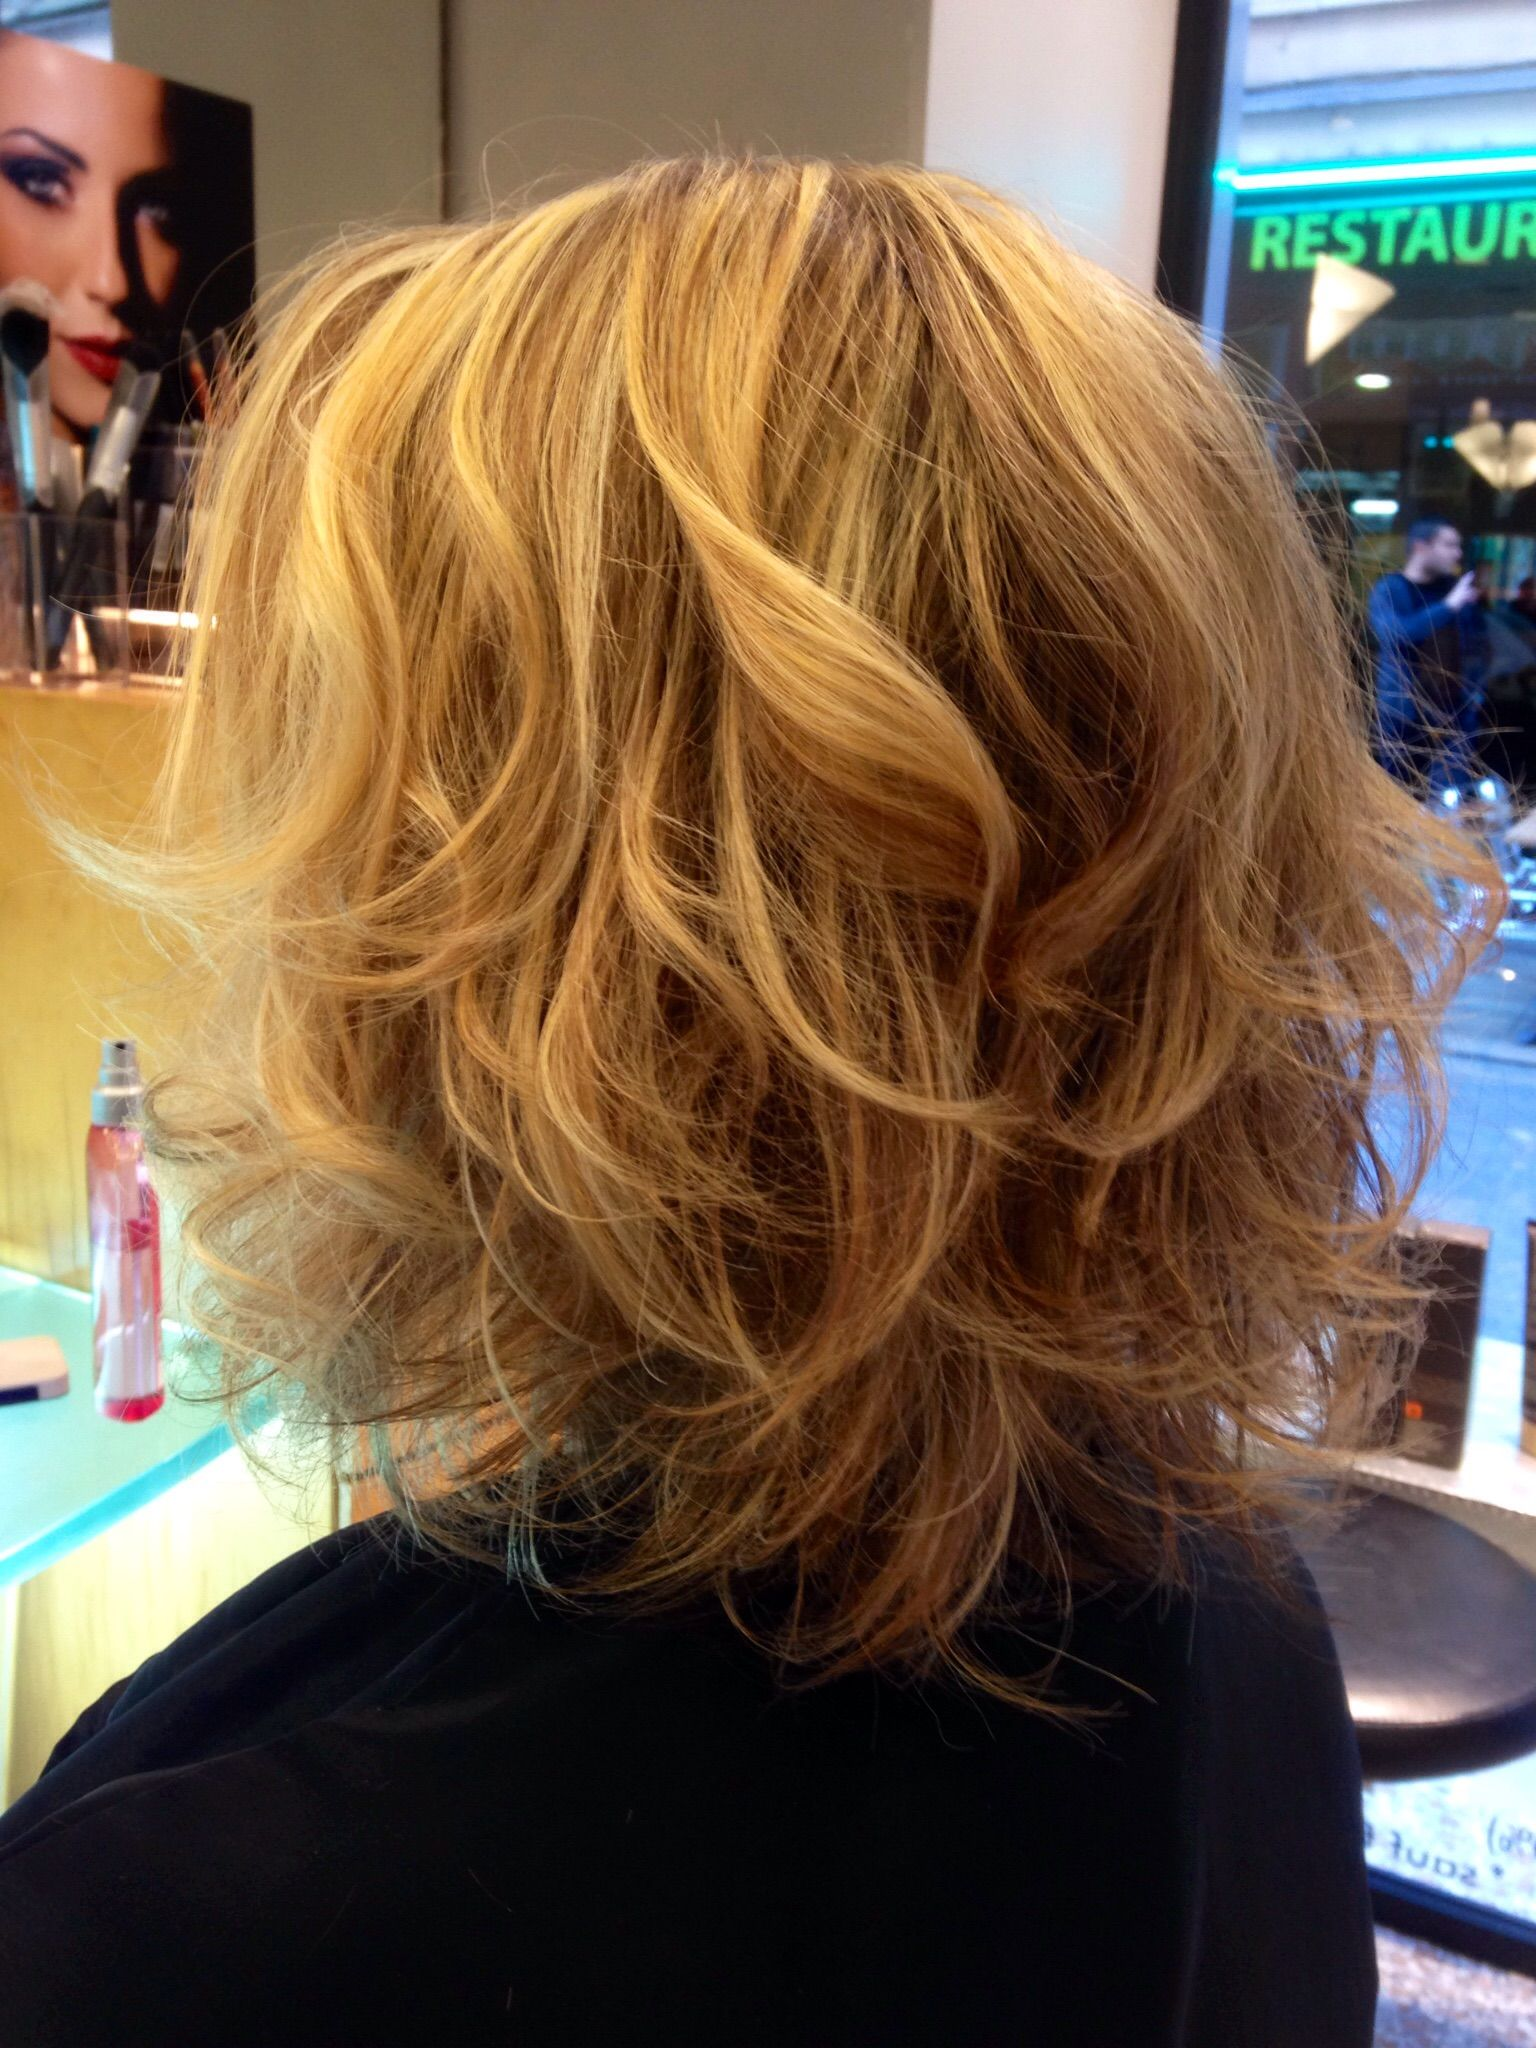 Modele de coupe de cheveux carre degrade